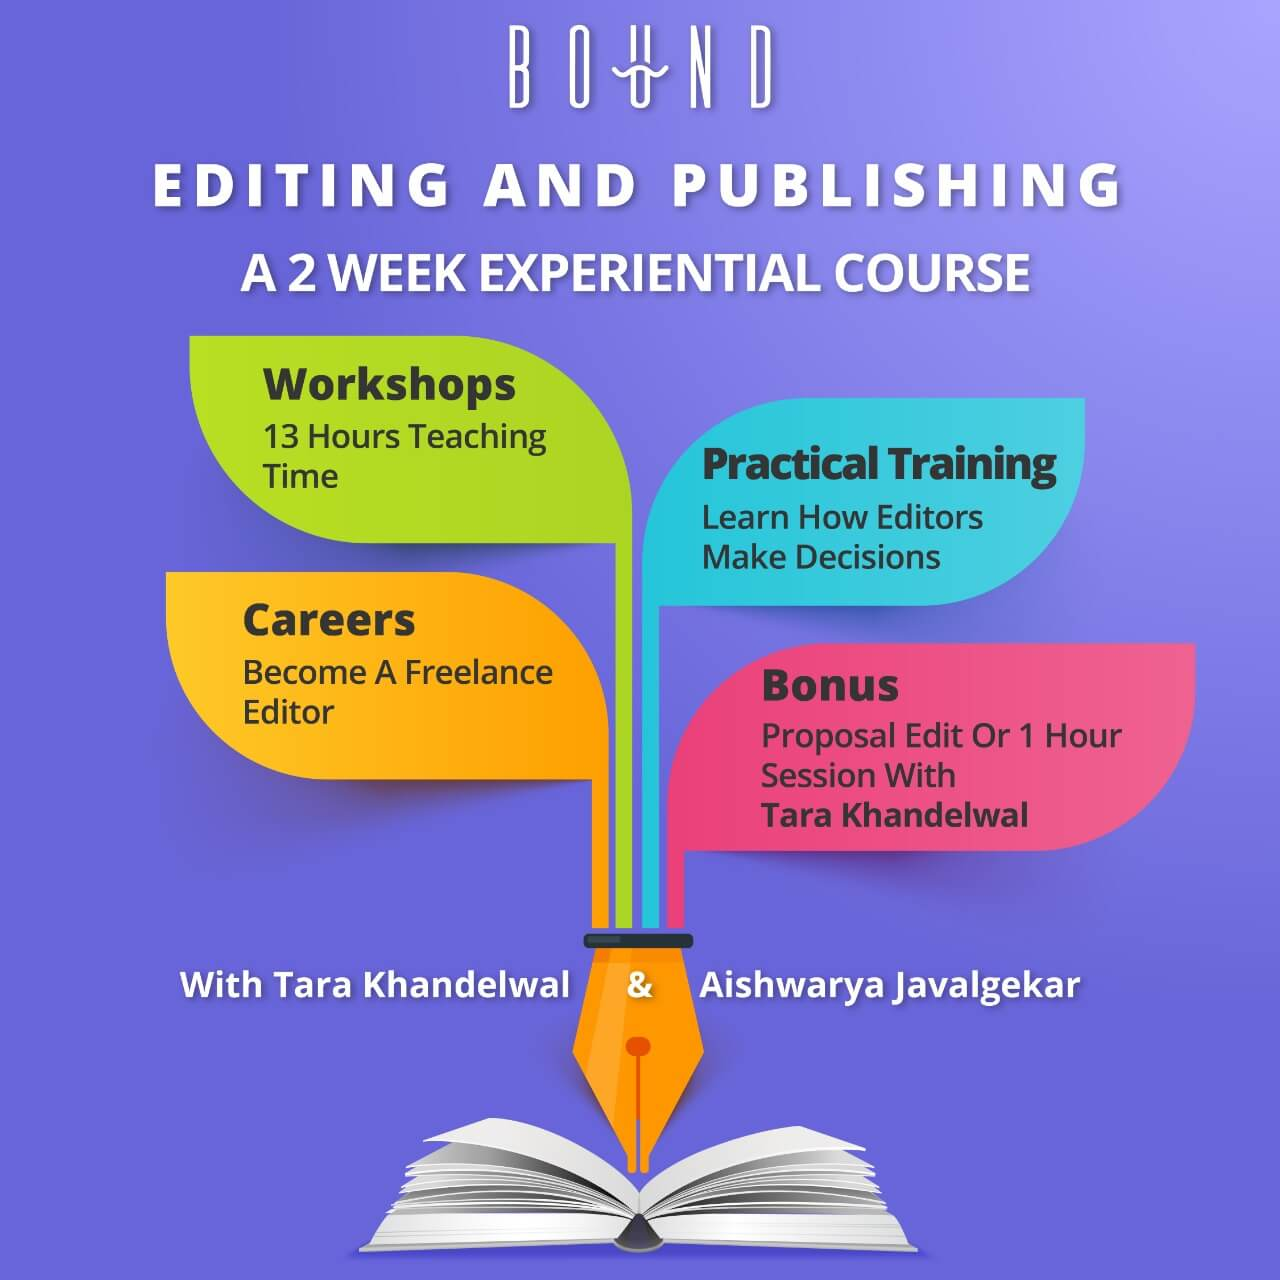 Editing And Publishing 2 Week Experiential Course